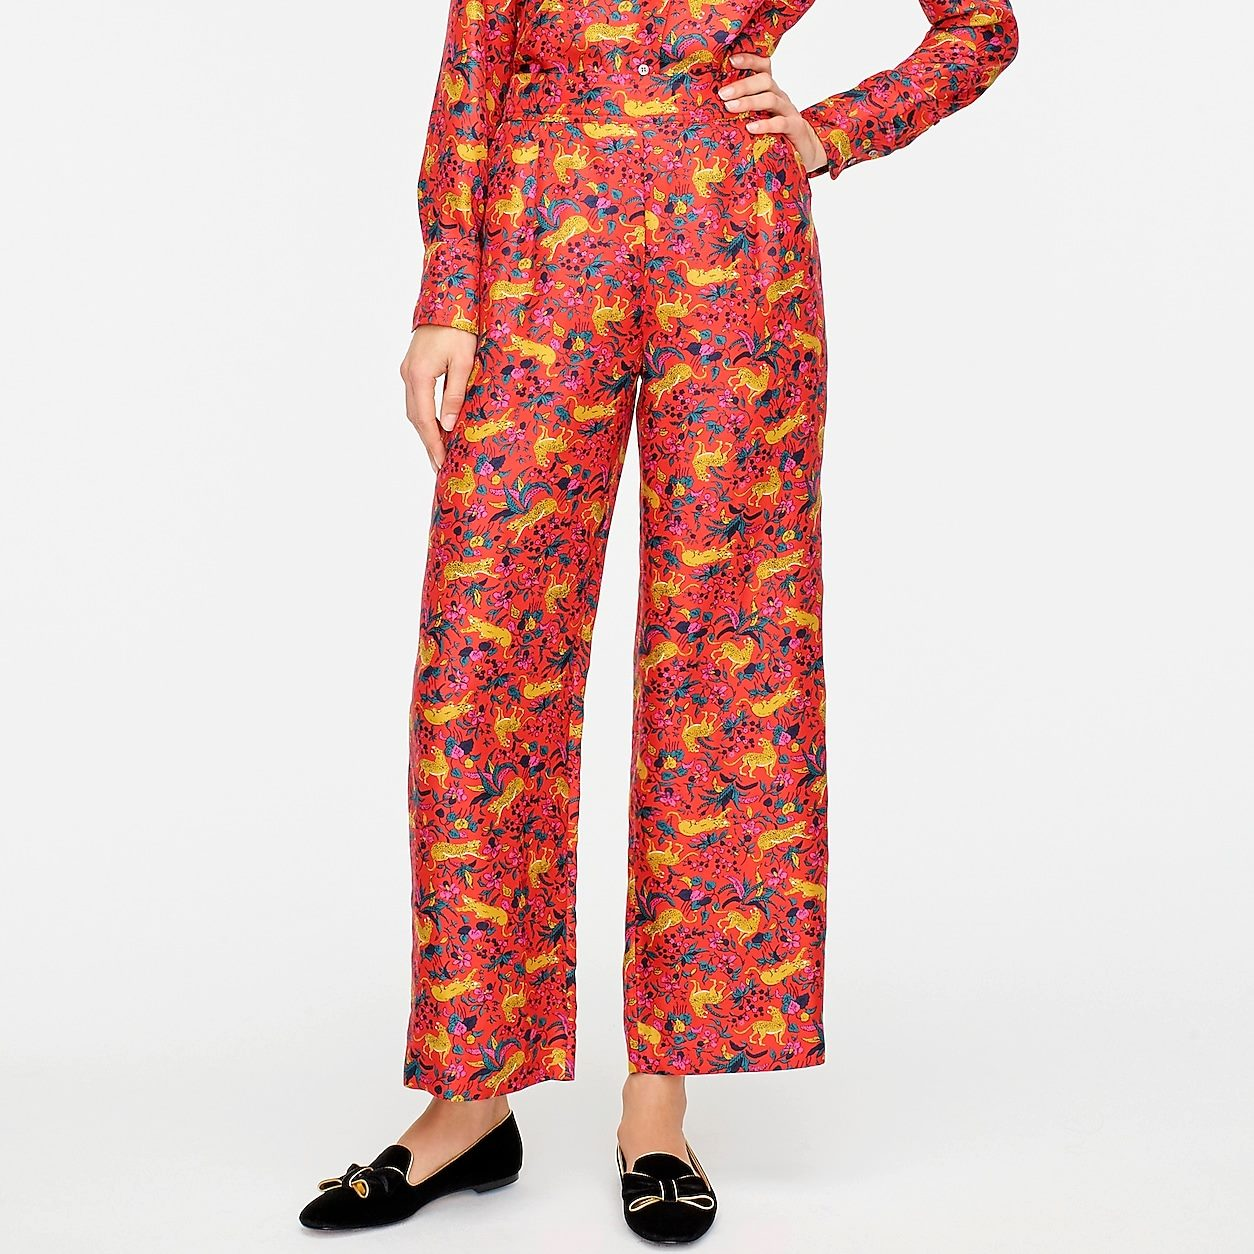 Collection Silk Twill Pull-On Pant In Jungle Cat Floral Print